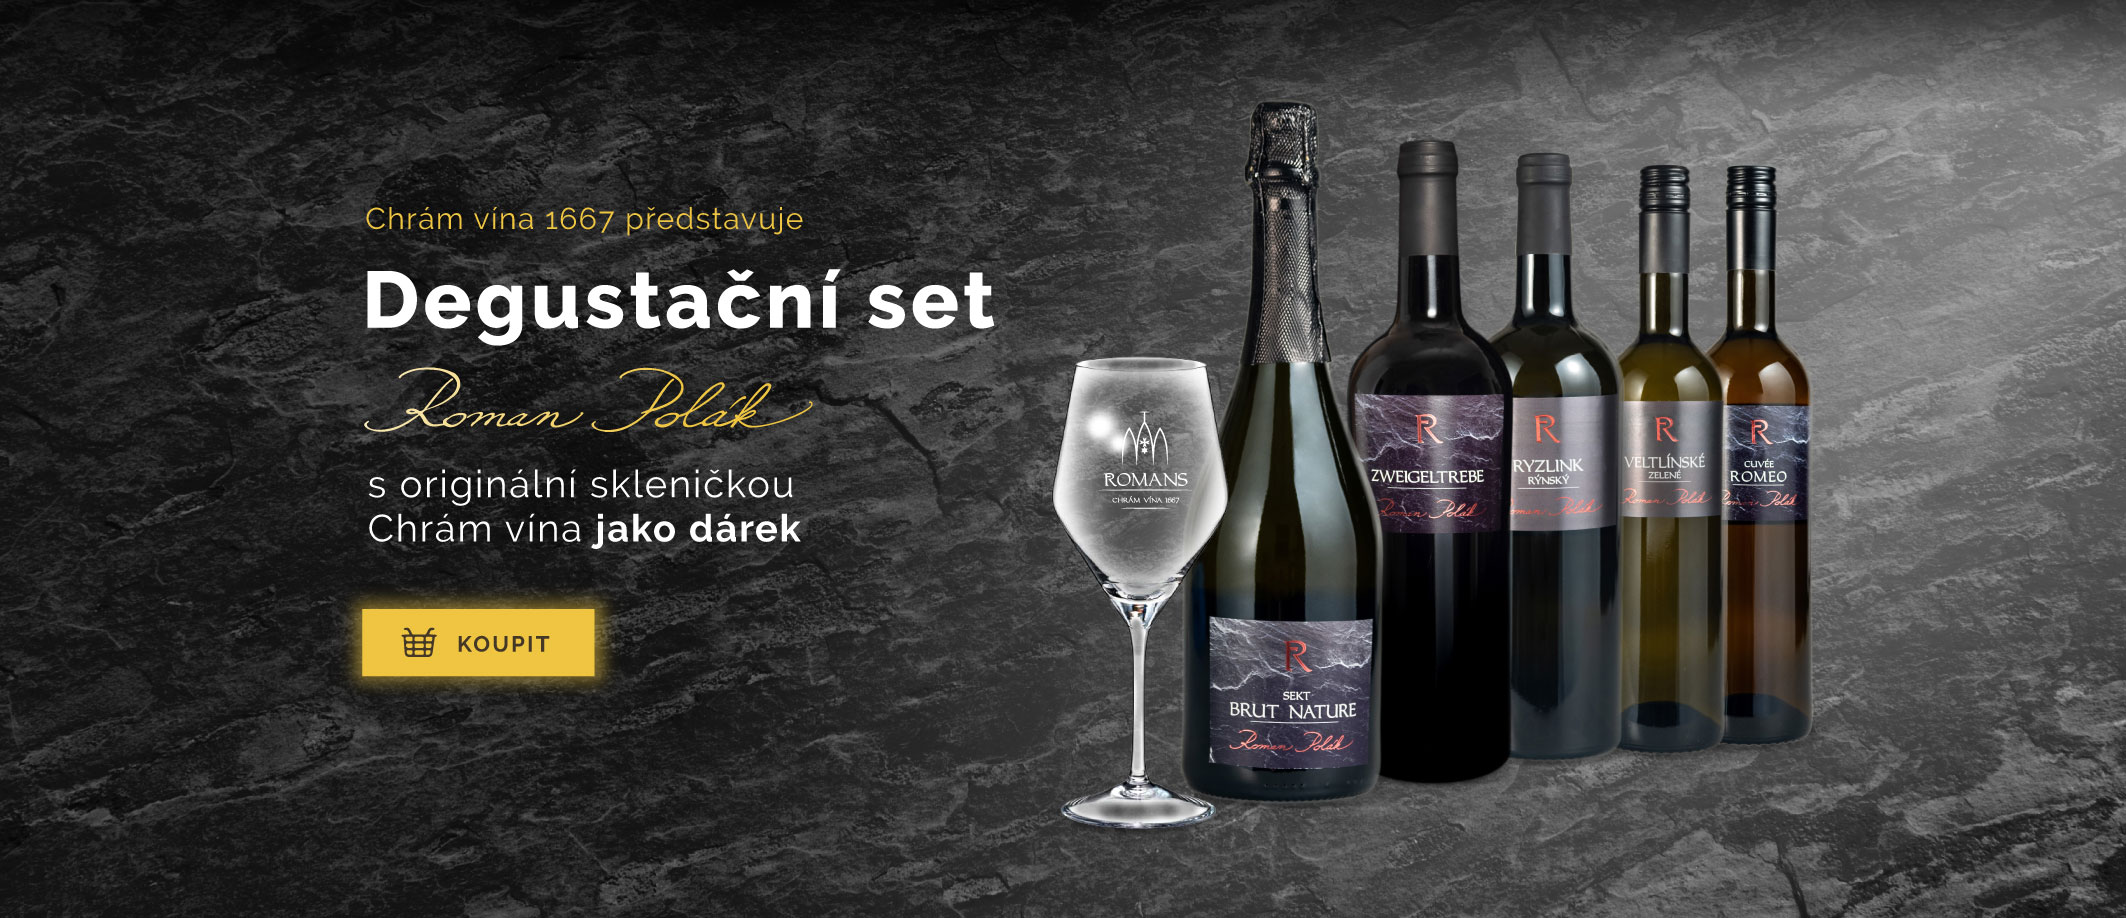 degustacni set